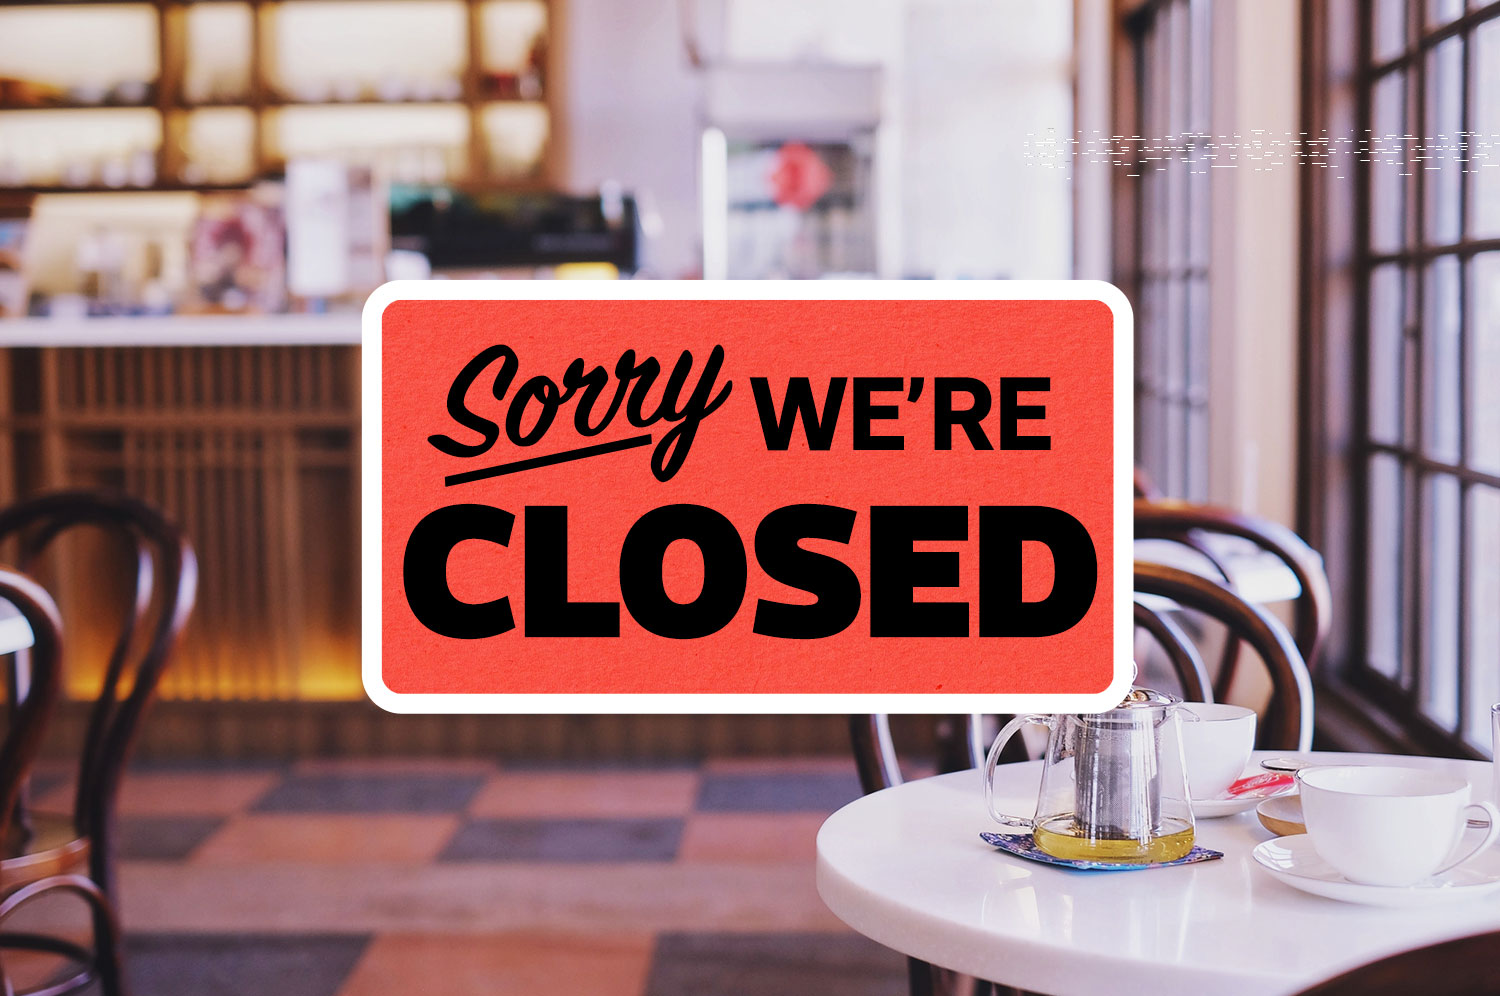 a restaurant with a sigh that says sorry we're closed